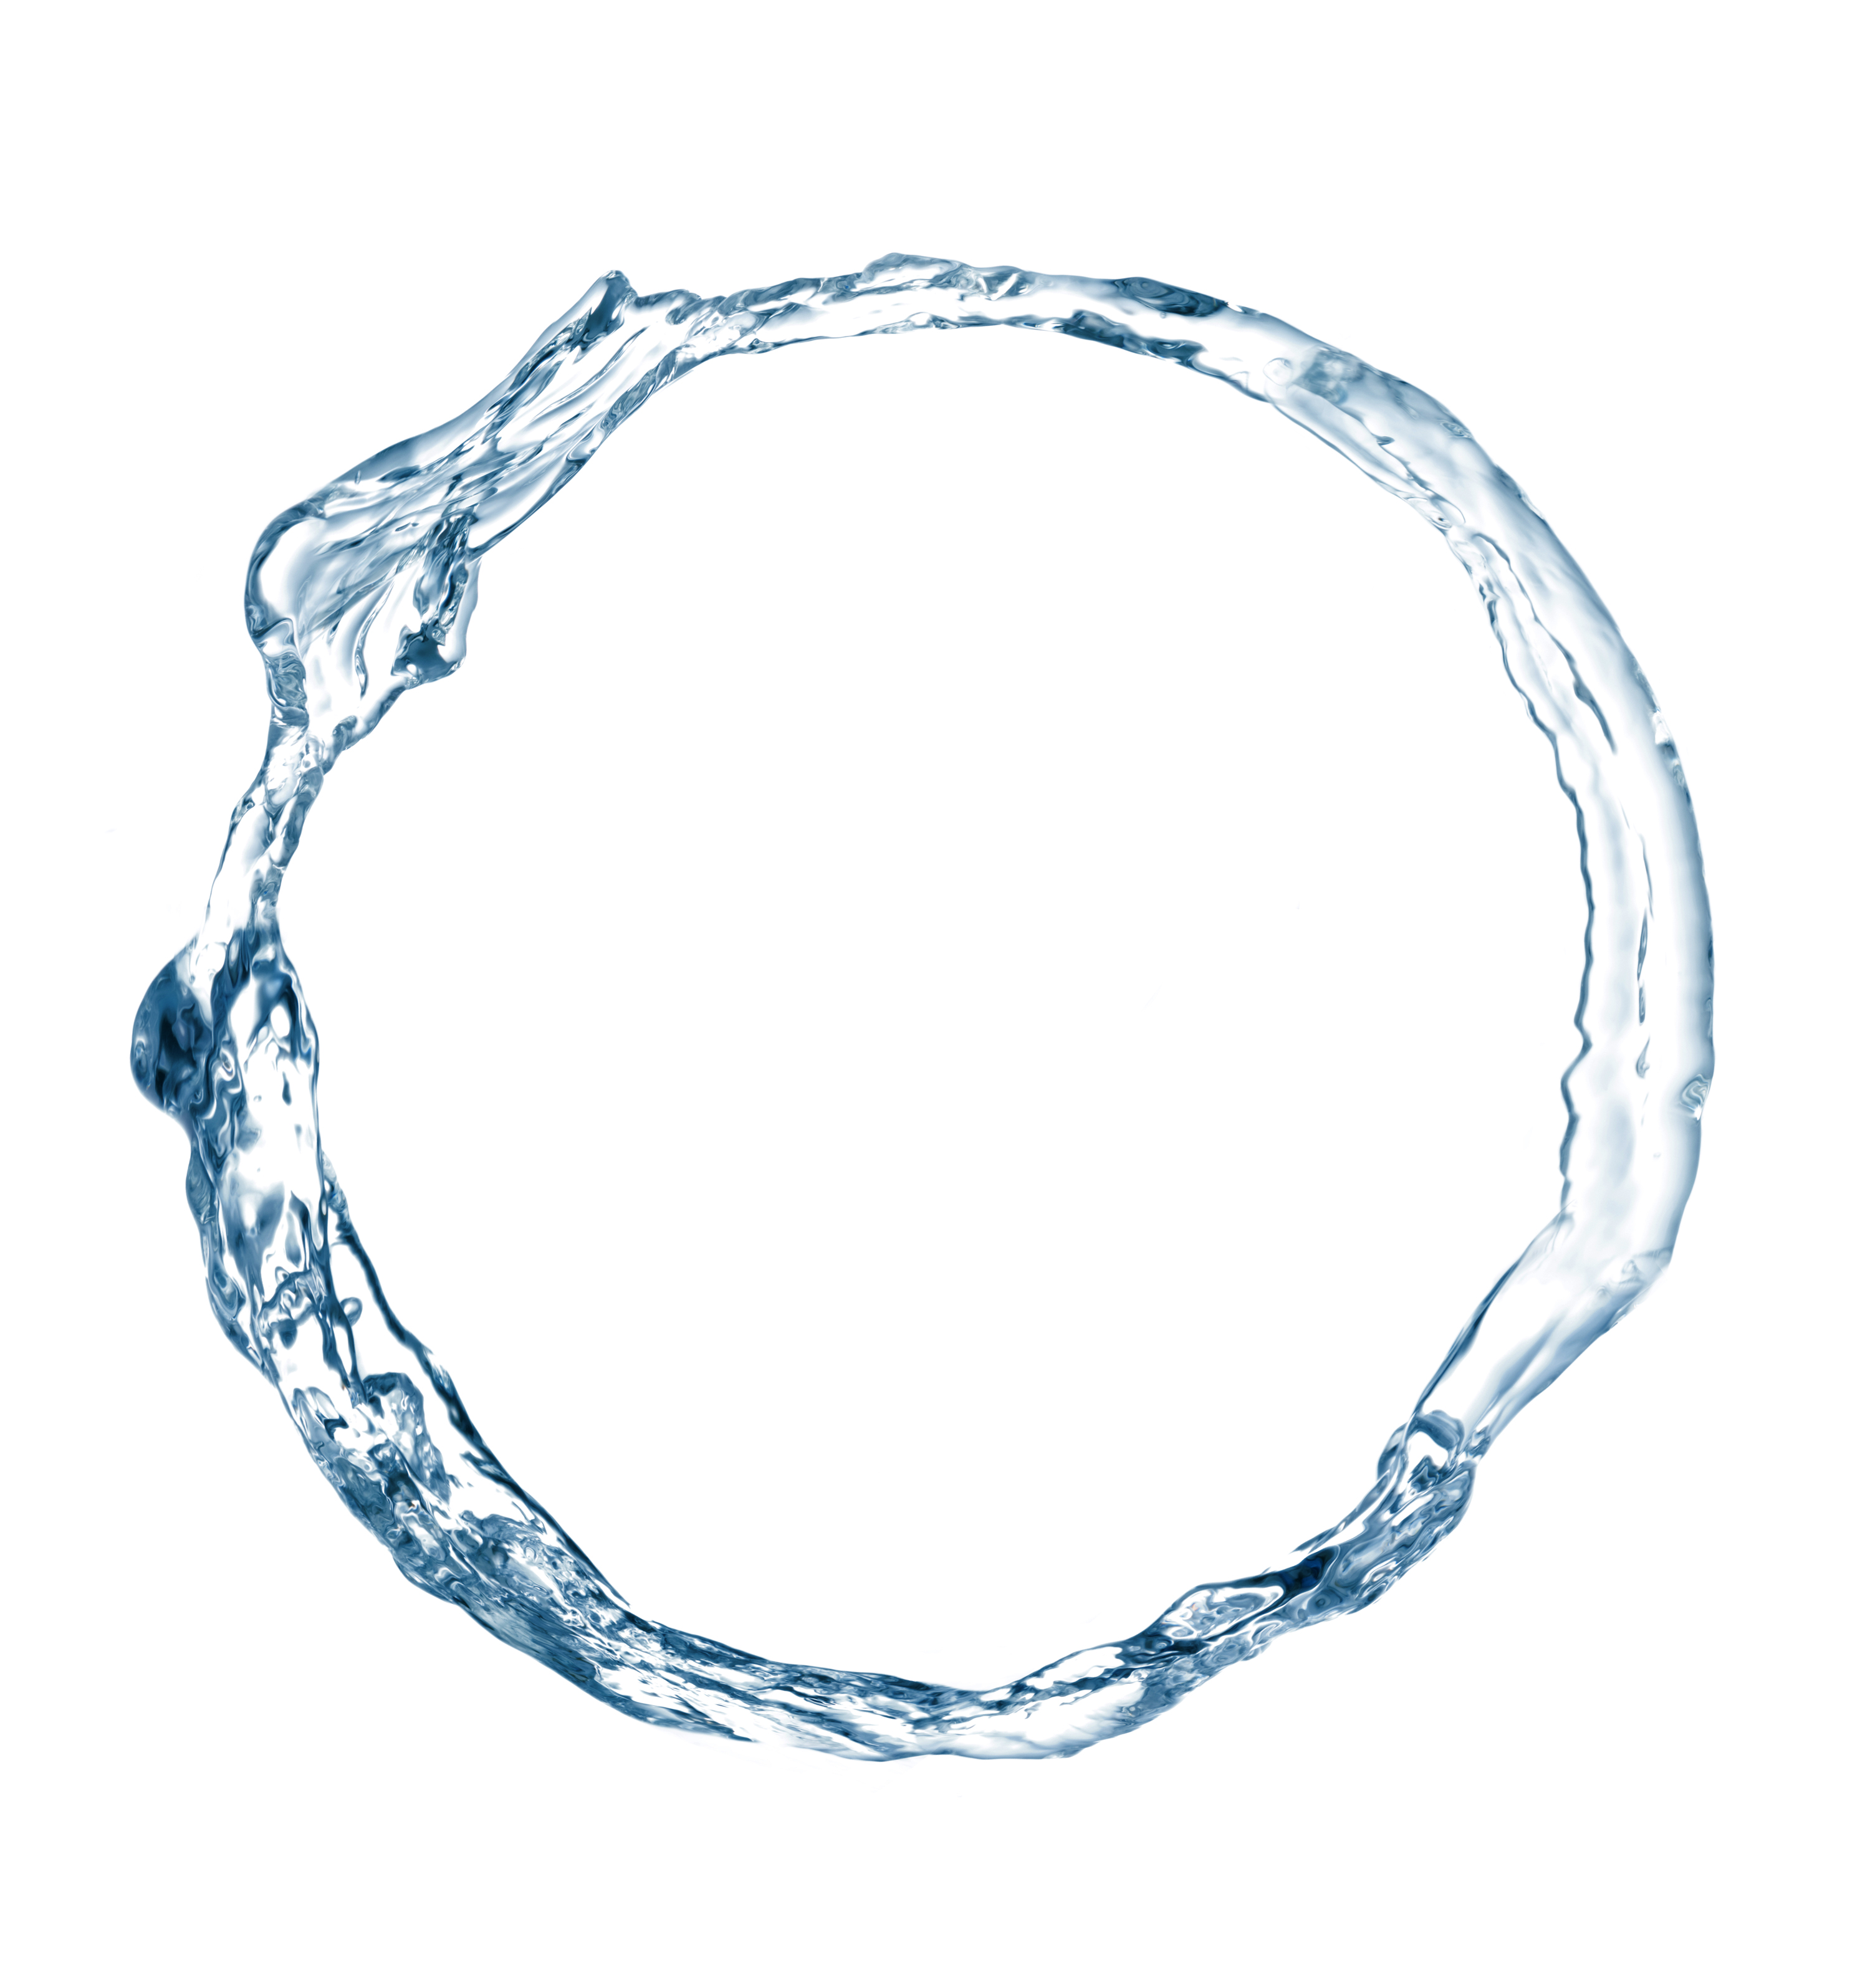 Water Ring is Coming to the East